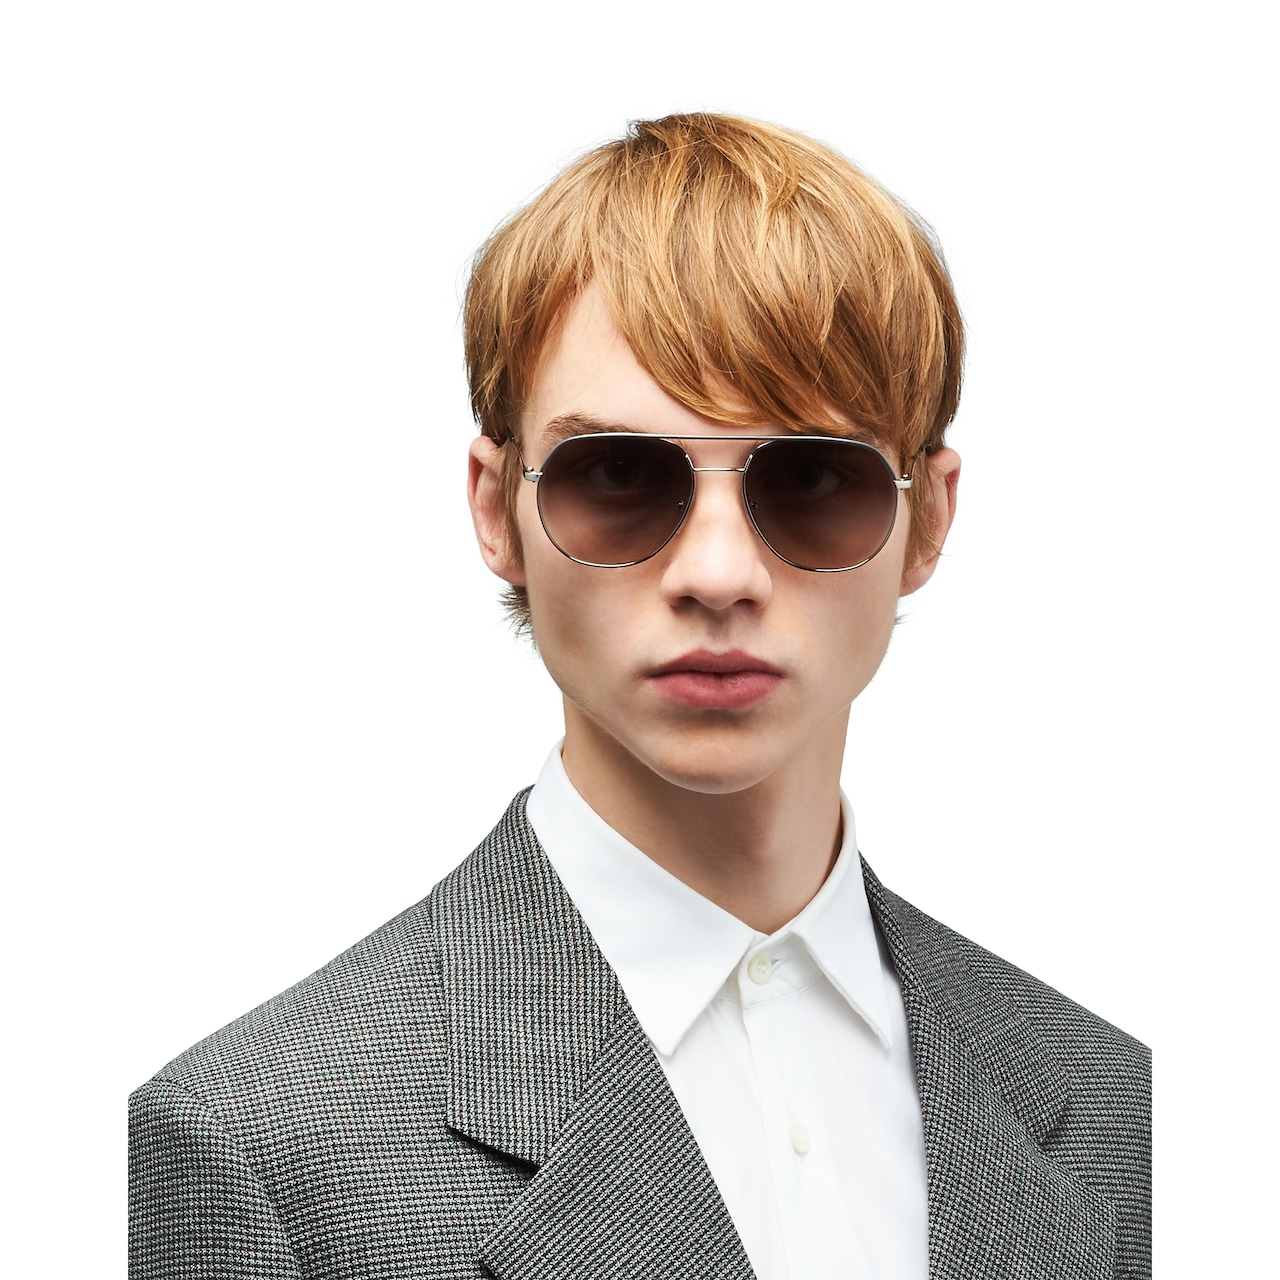 Prada Prada Eyewear Collection 2